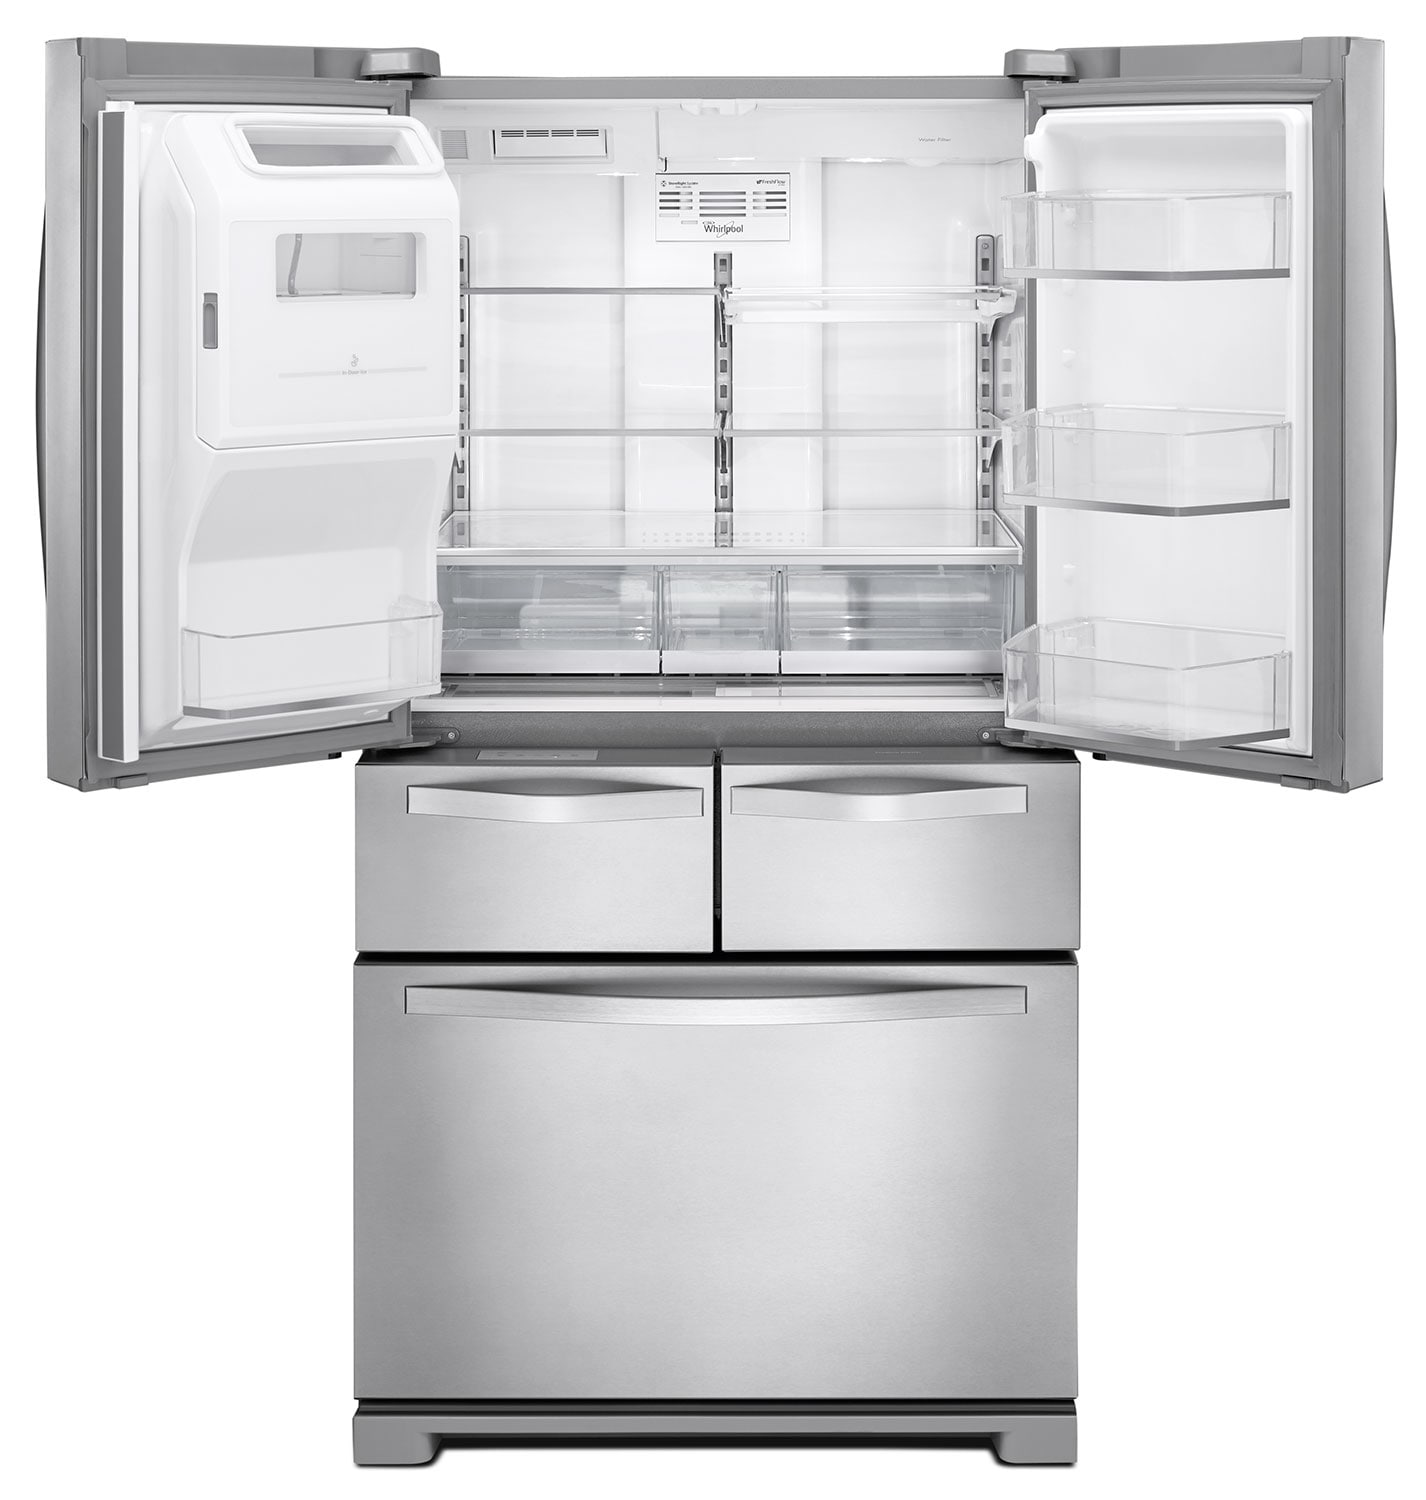 French Door Refrigerators: Whirlpool Stainless Steel French Door Refrigerator (25.8